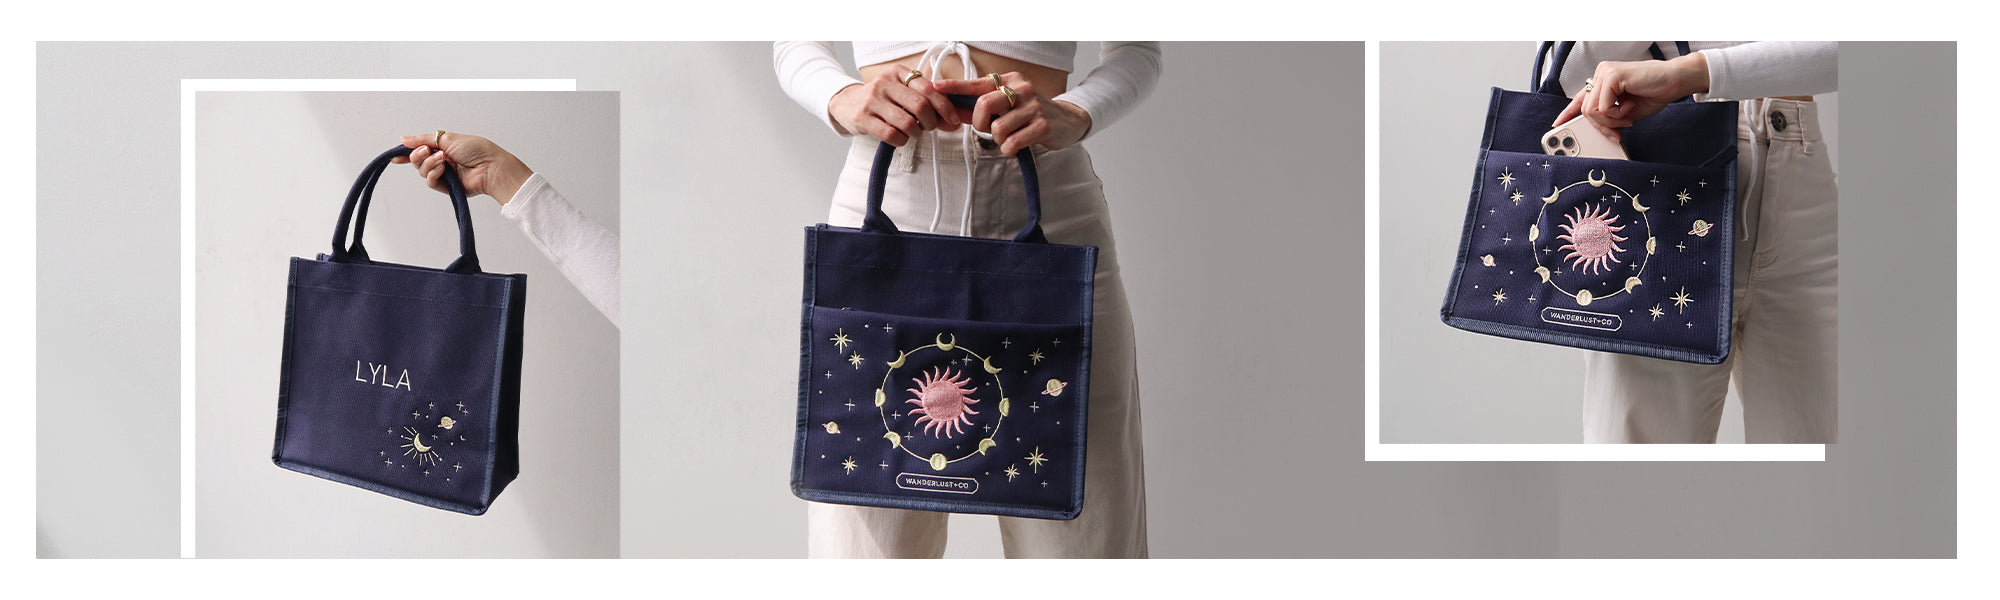 Meet the Le Soleil Tote Bag